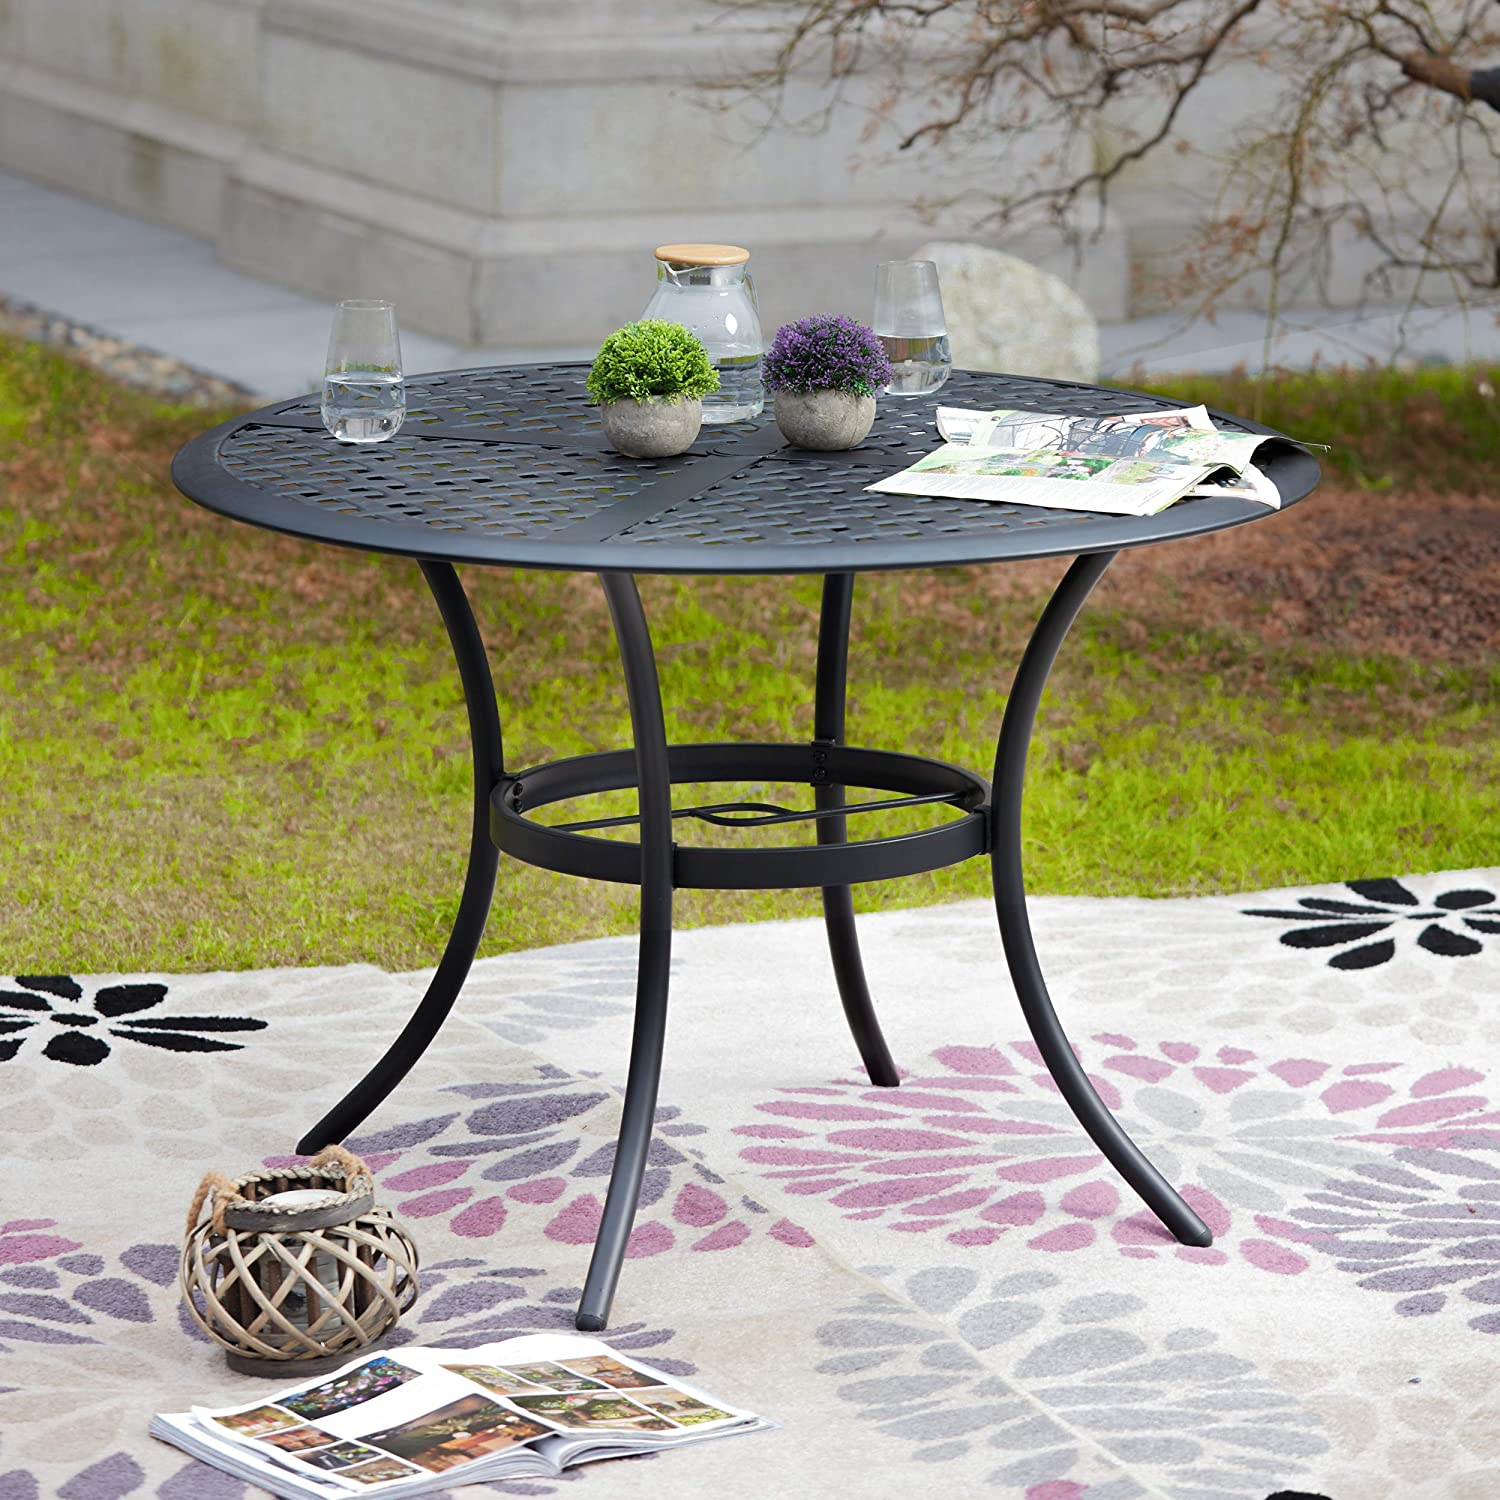 LOKATSE HOME 42.1'' Outdoor Patio Bistro Metal Wrought Iron Round Dining Table with Umbrella Hole, Black